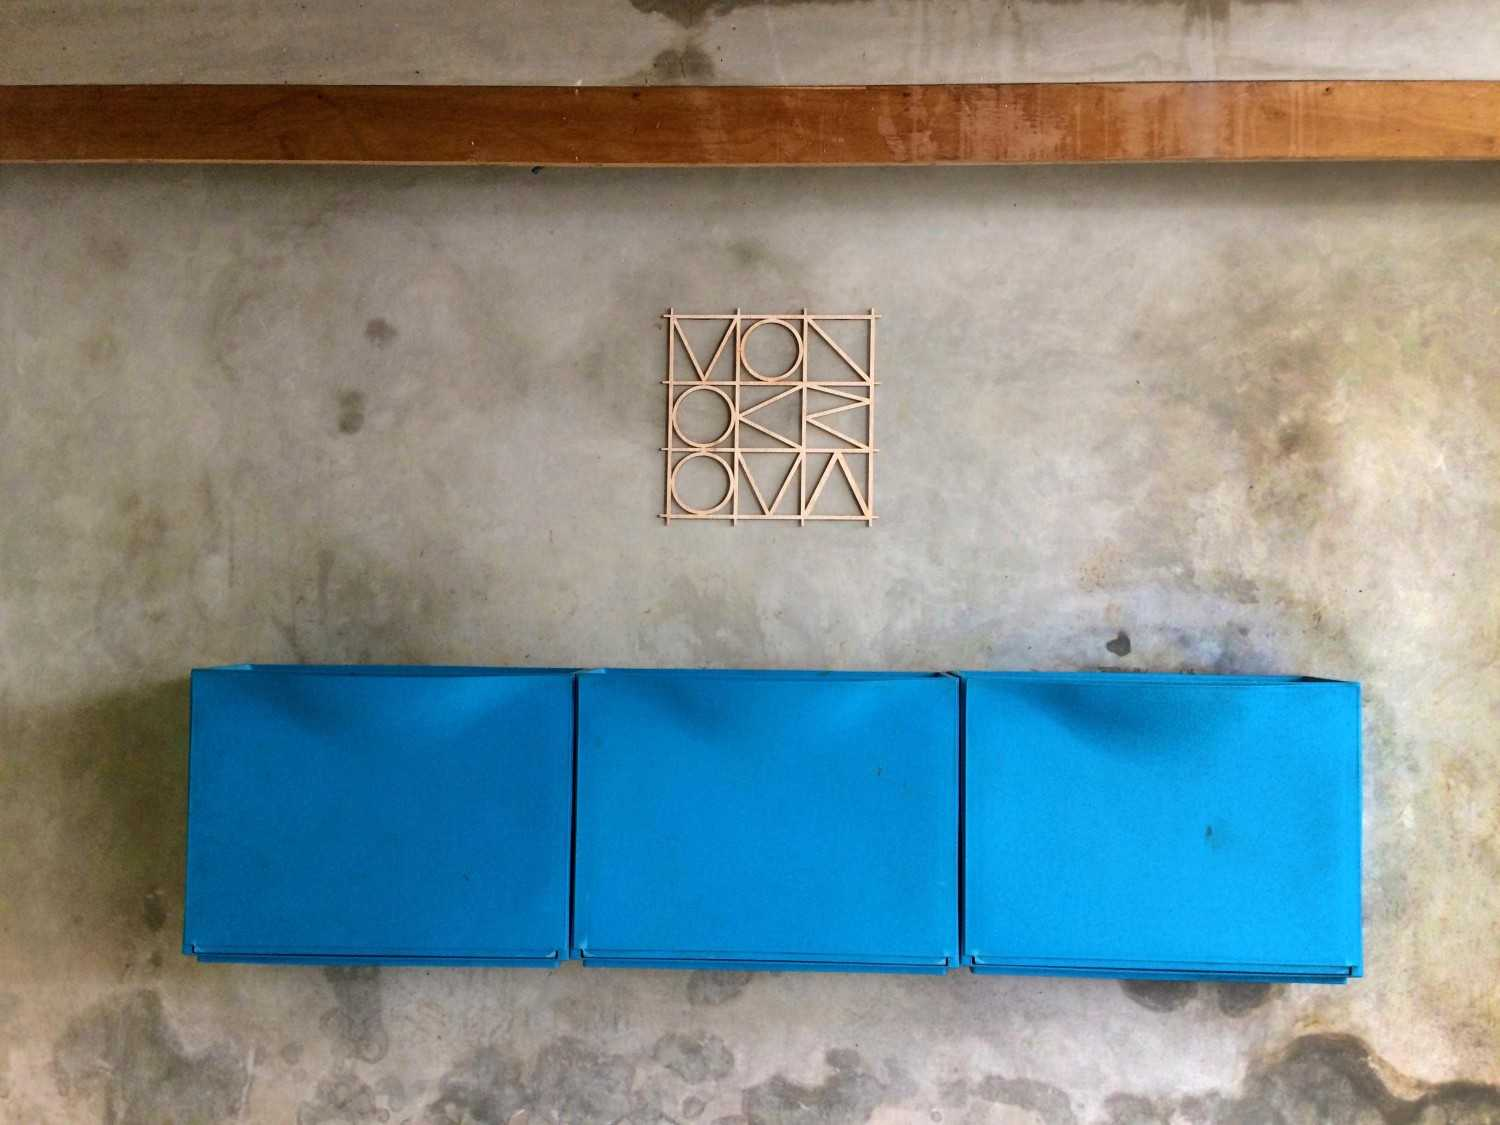 Monokroma Architect Monokroma Architect Office Lippo Karawaci Lippo Karawaci 4-Shoe-Rack Modern 23585